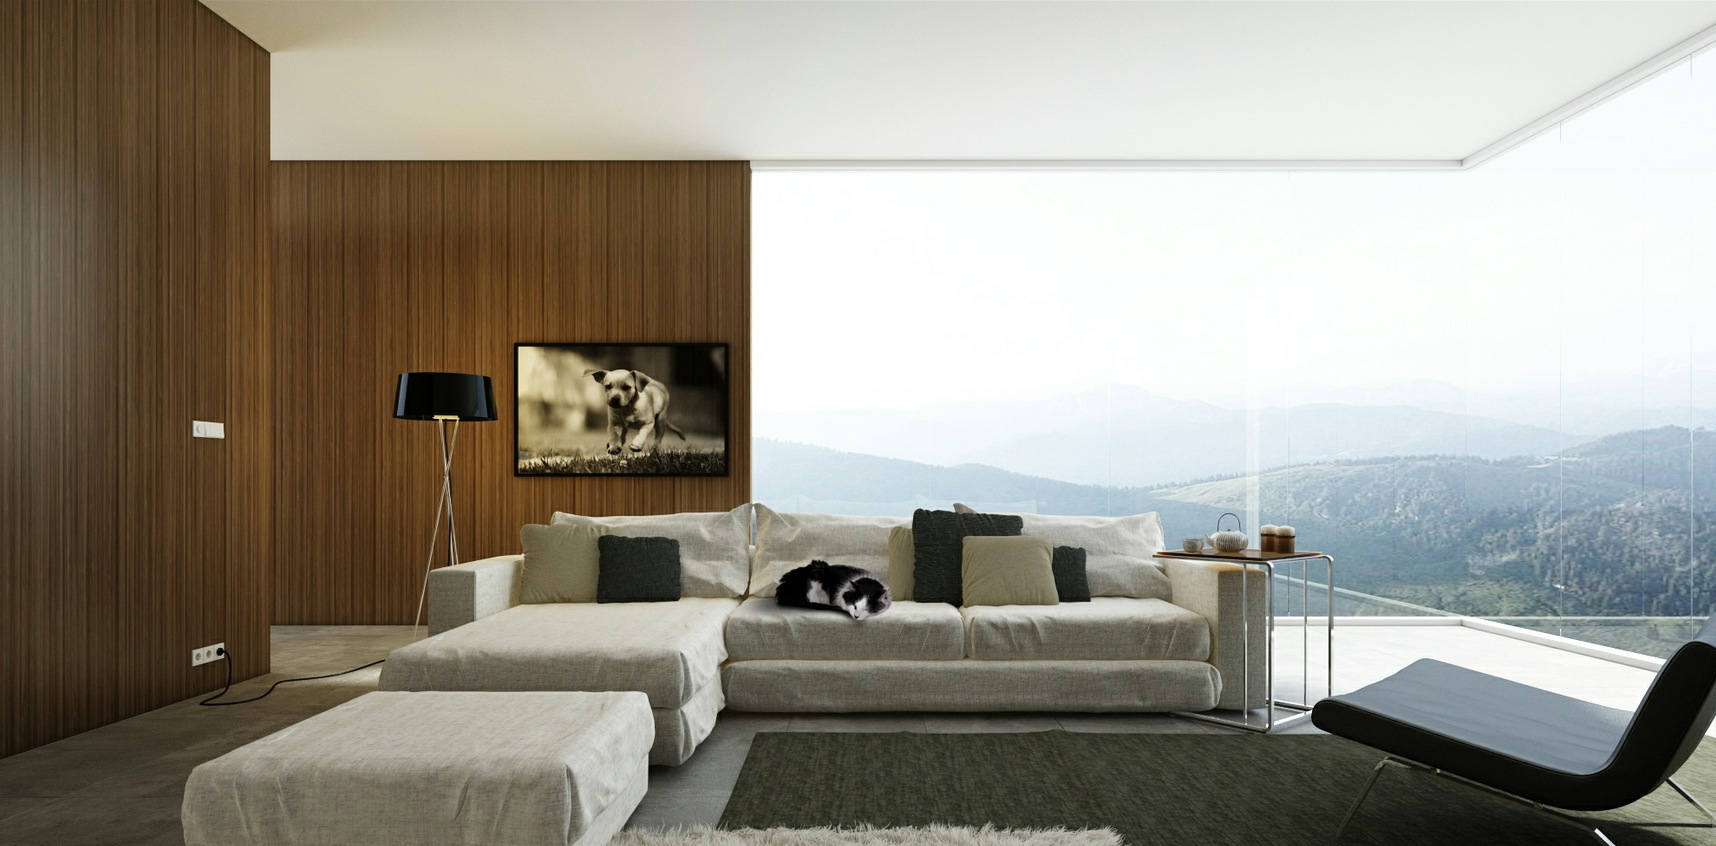 Living rooms with great views for Interior design lounge room ideas